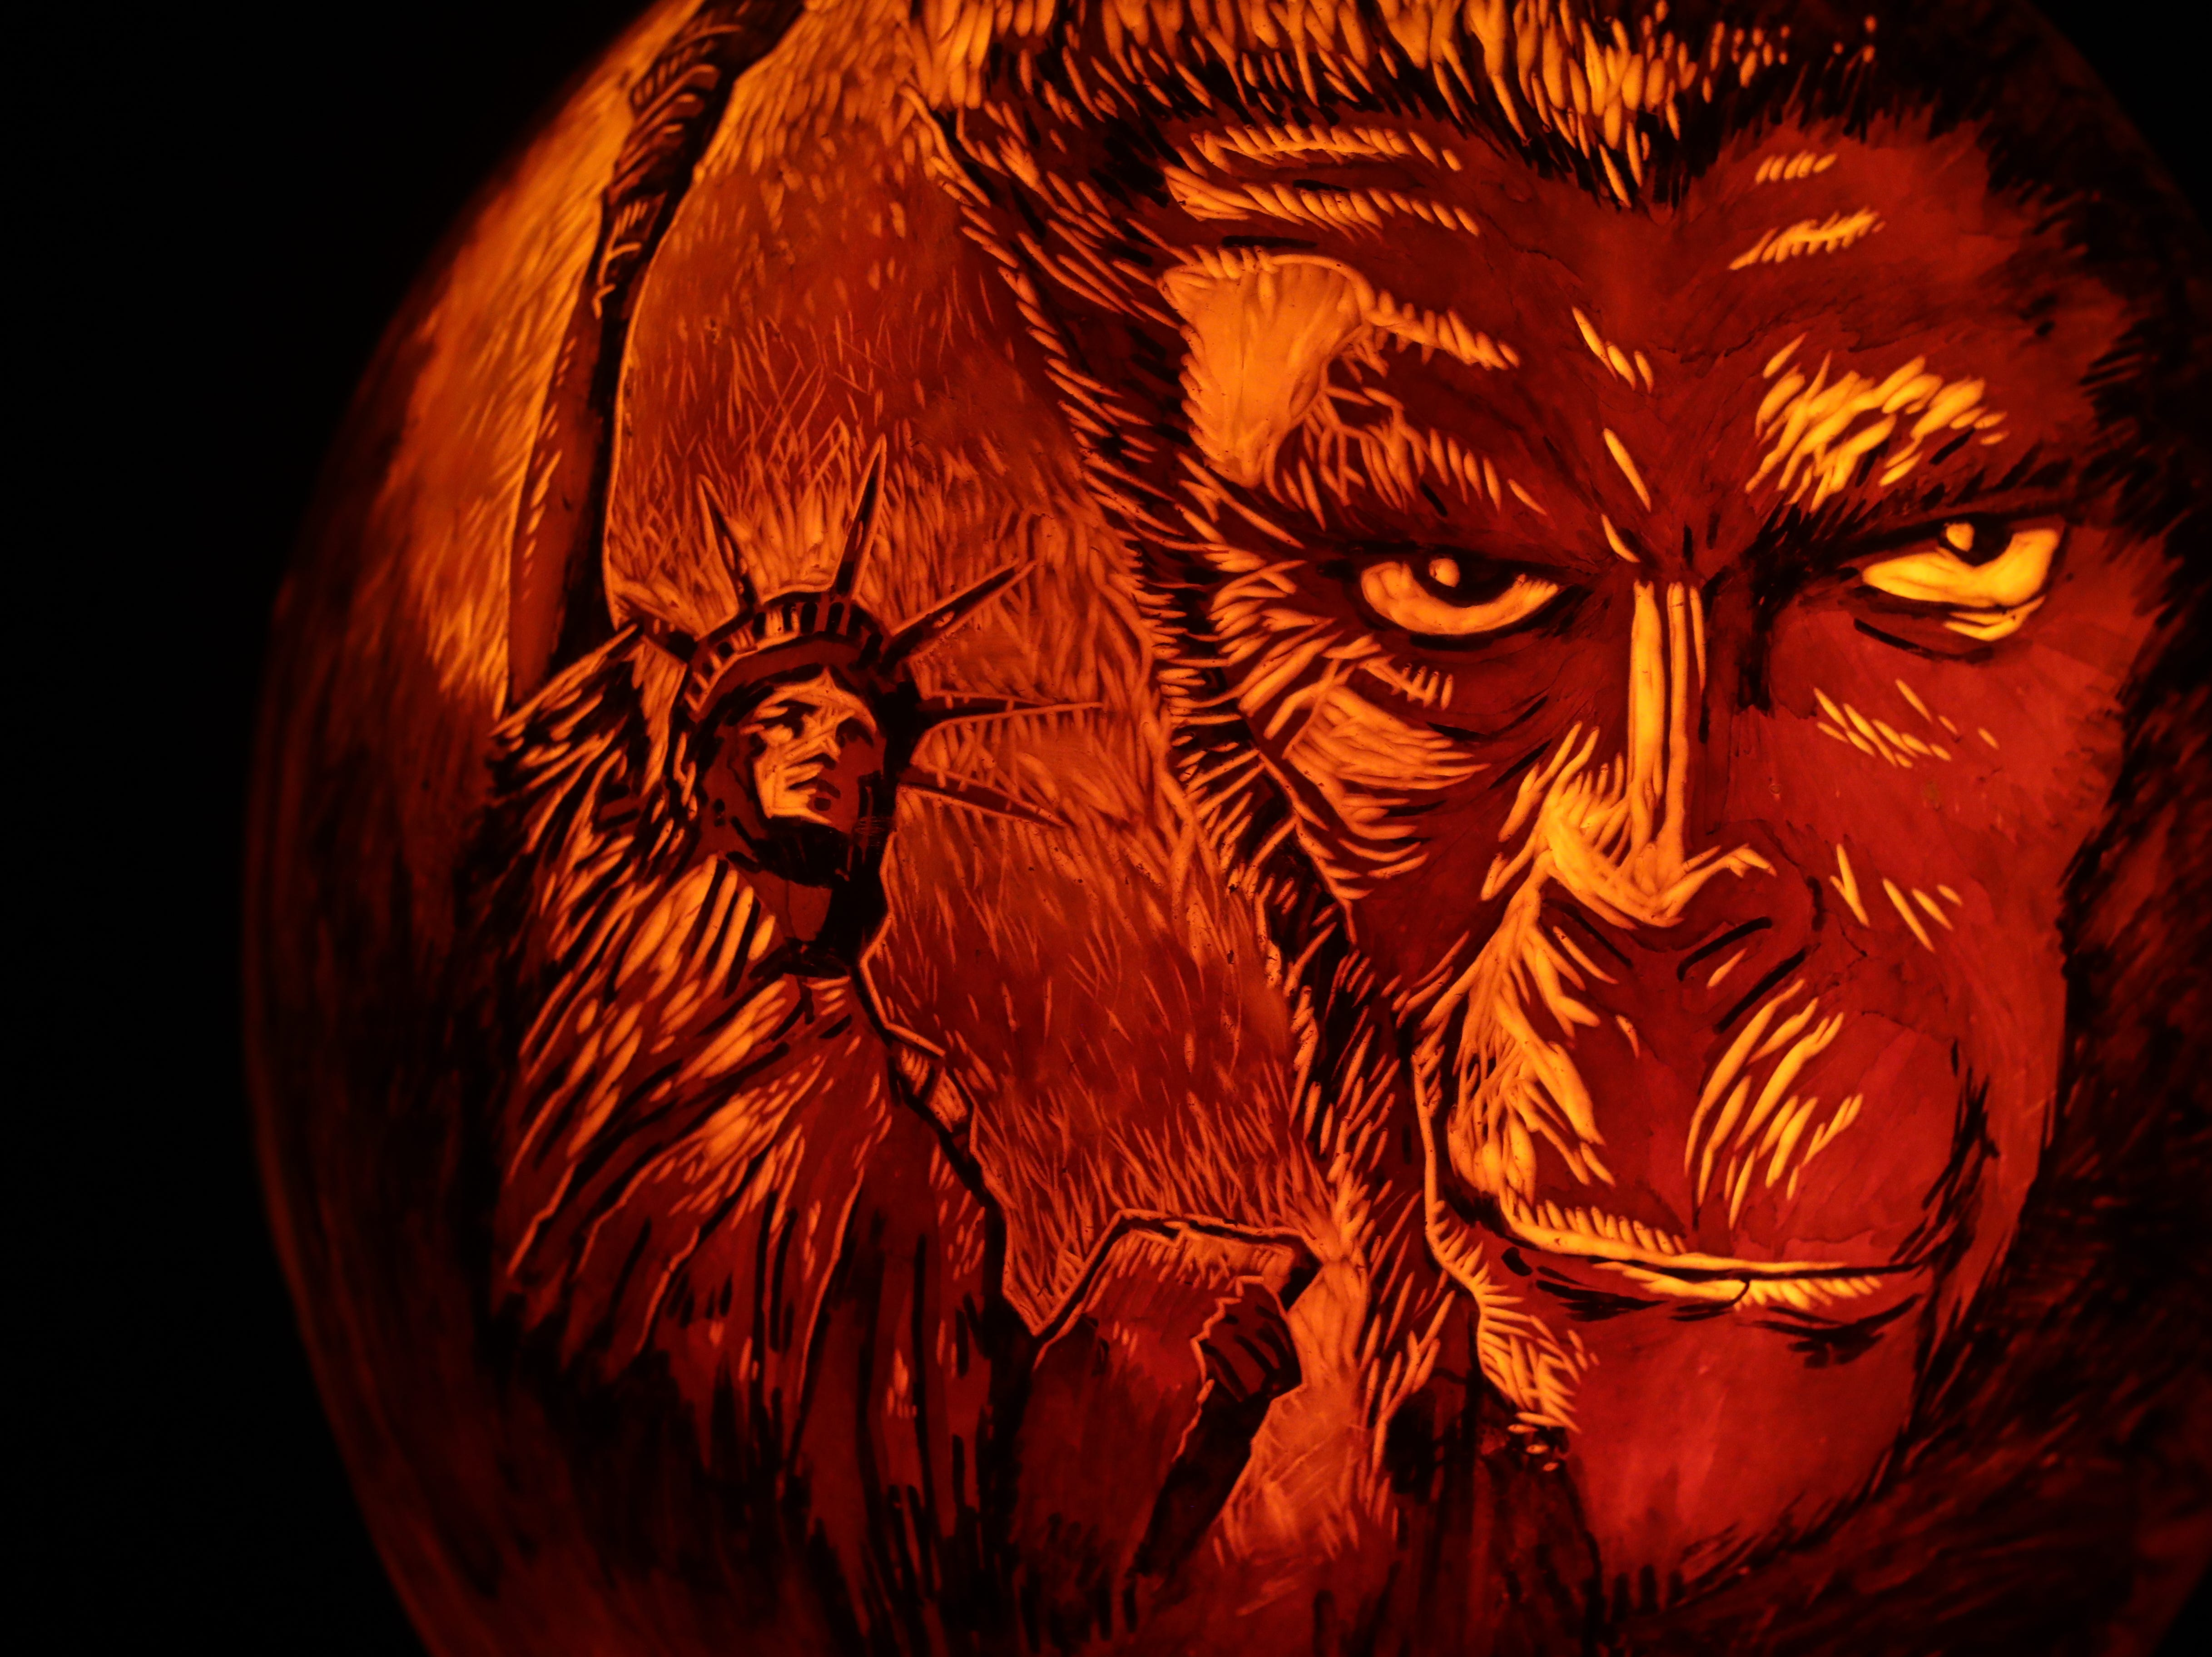 Planet of the Apes appears on a pumpkin at this year's Jack O' Lantern Spectacular. Oct. 9, 2018